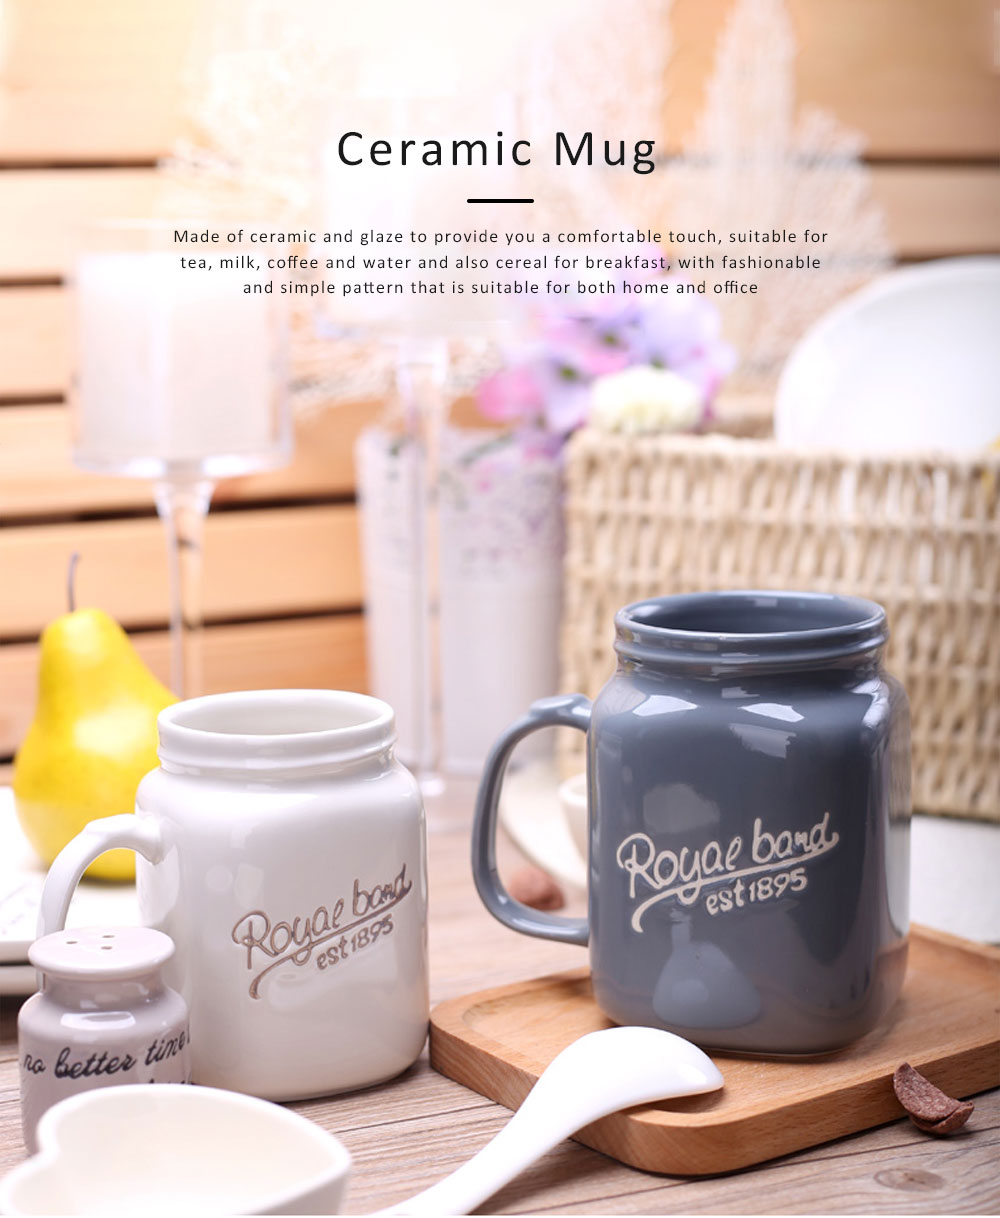 2 Pack Ceramic Mug Cup with Glaze for Tea, Milk, Coffee, Water, Breakfast Cup for Cereal, Water Mug with Big Capacity 0